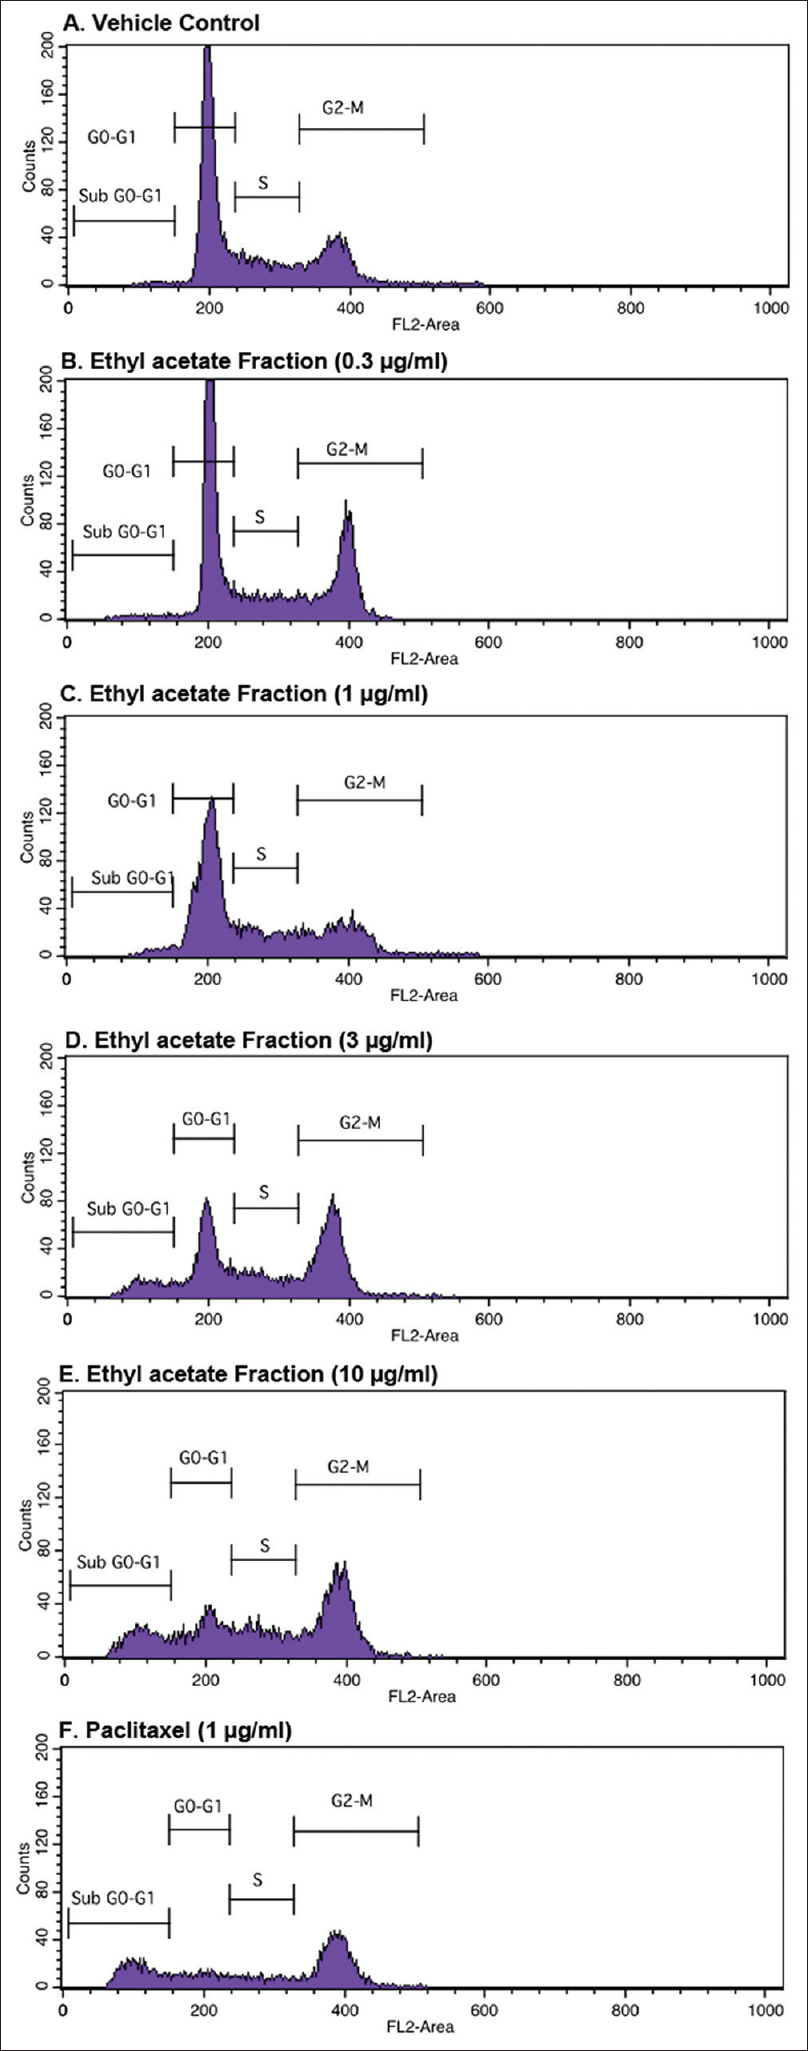 Figure 3: Analysis of cell cycle distribution after 48 h exposure of different concentration of ethyl acetate fraction in A673 cell line